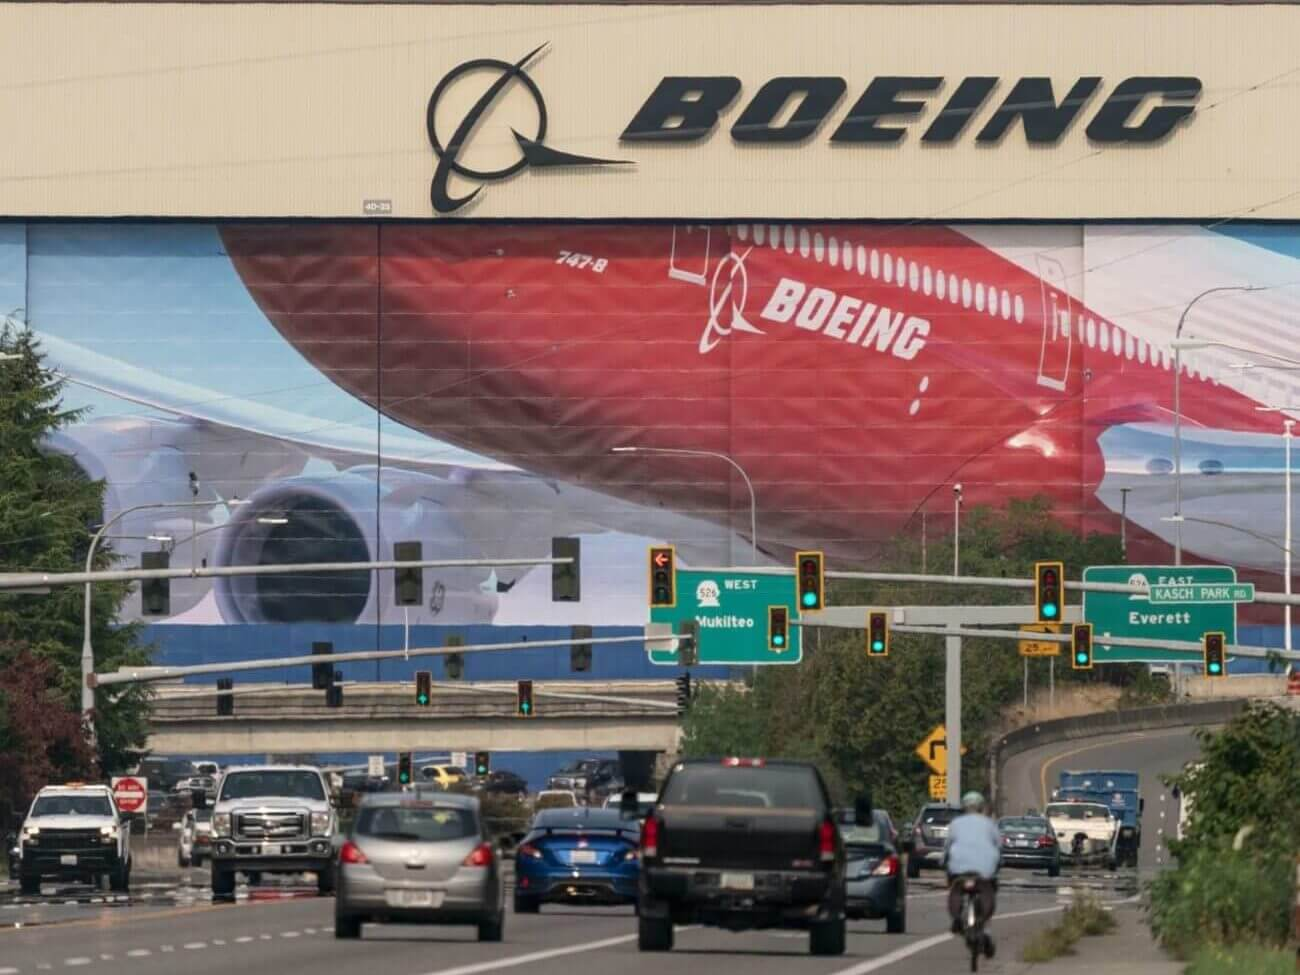 Boeing Is the Newest Firm to Sprint a Hostile Industry Atmosphere